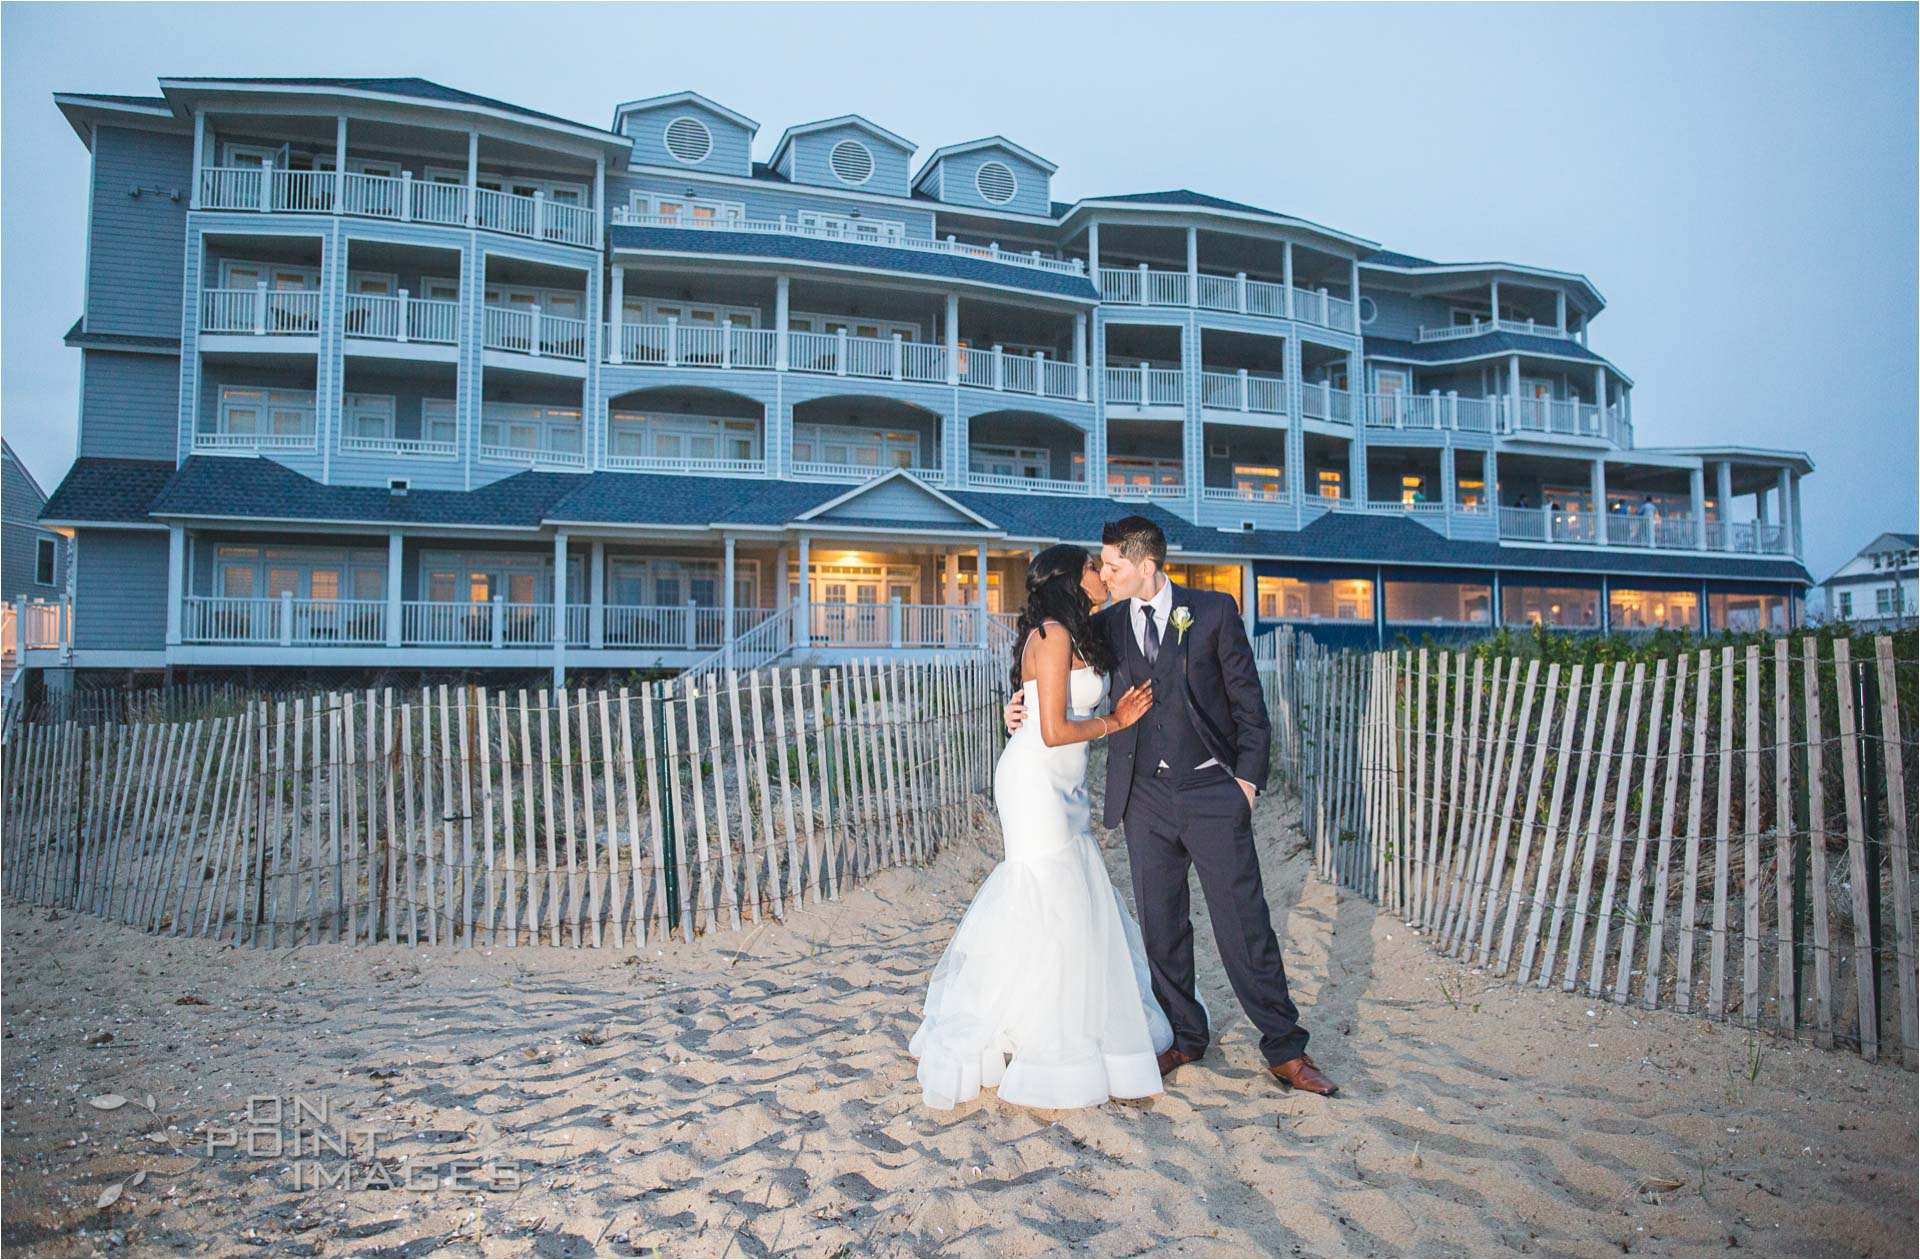 madison-beach-hotel-wedding-CT-46.jpg